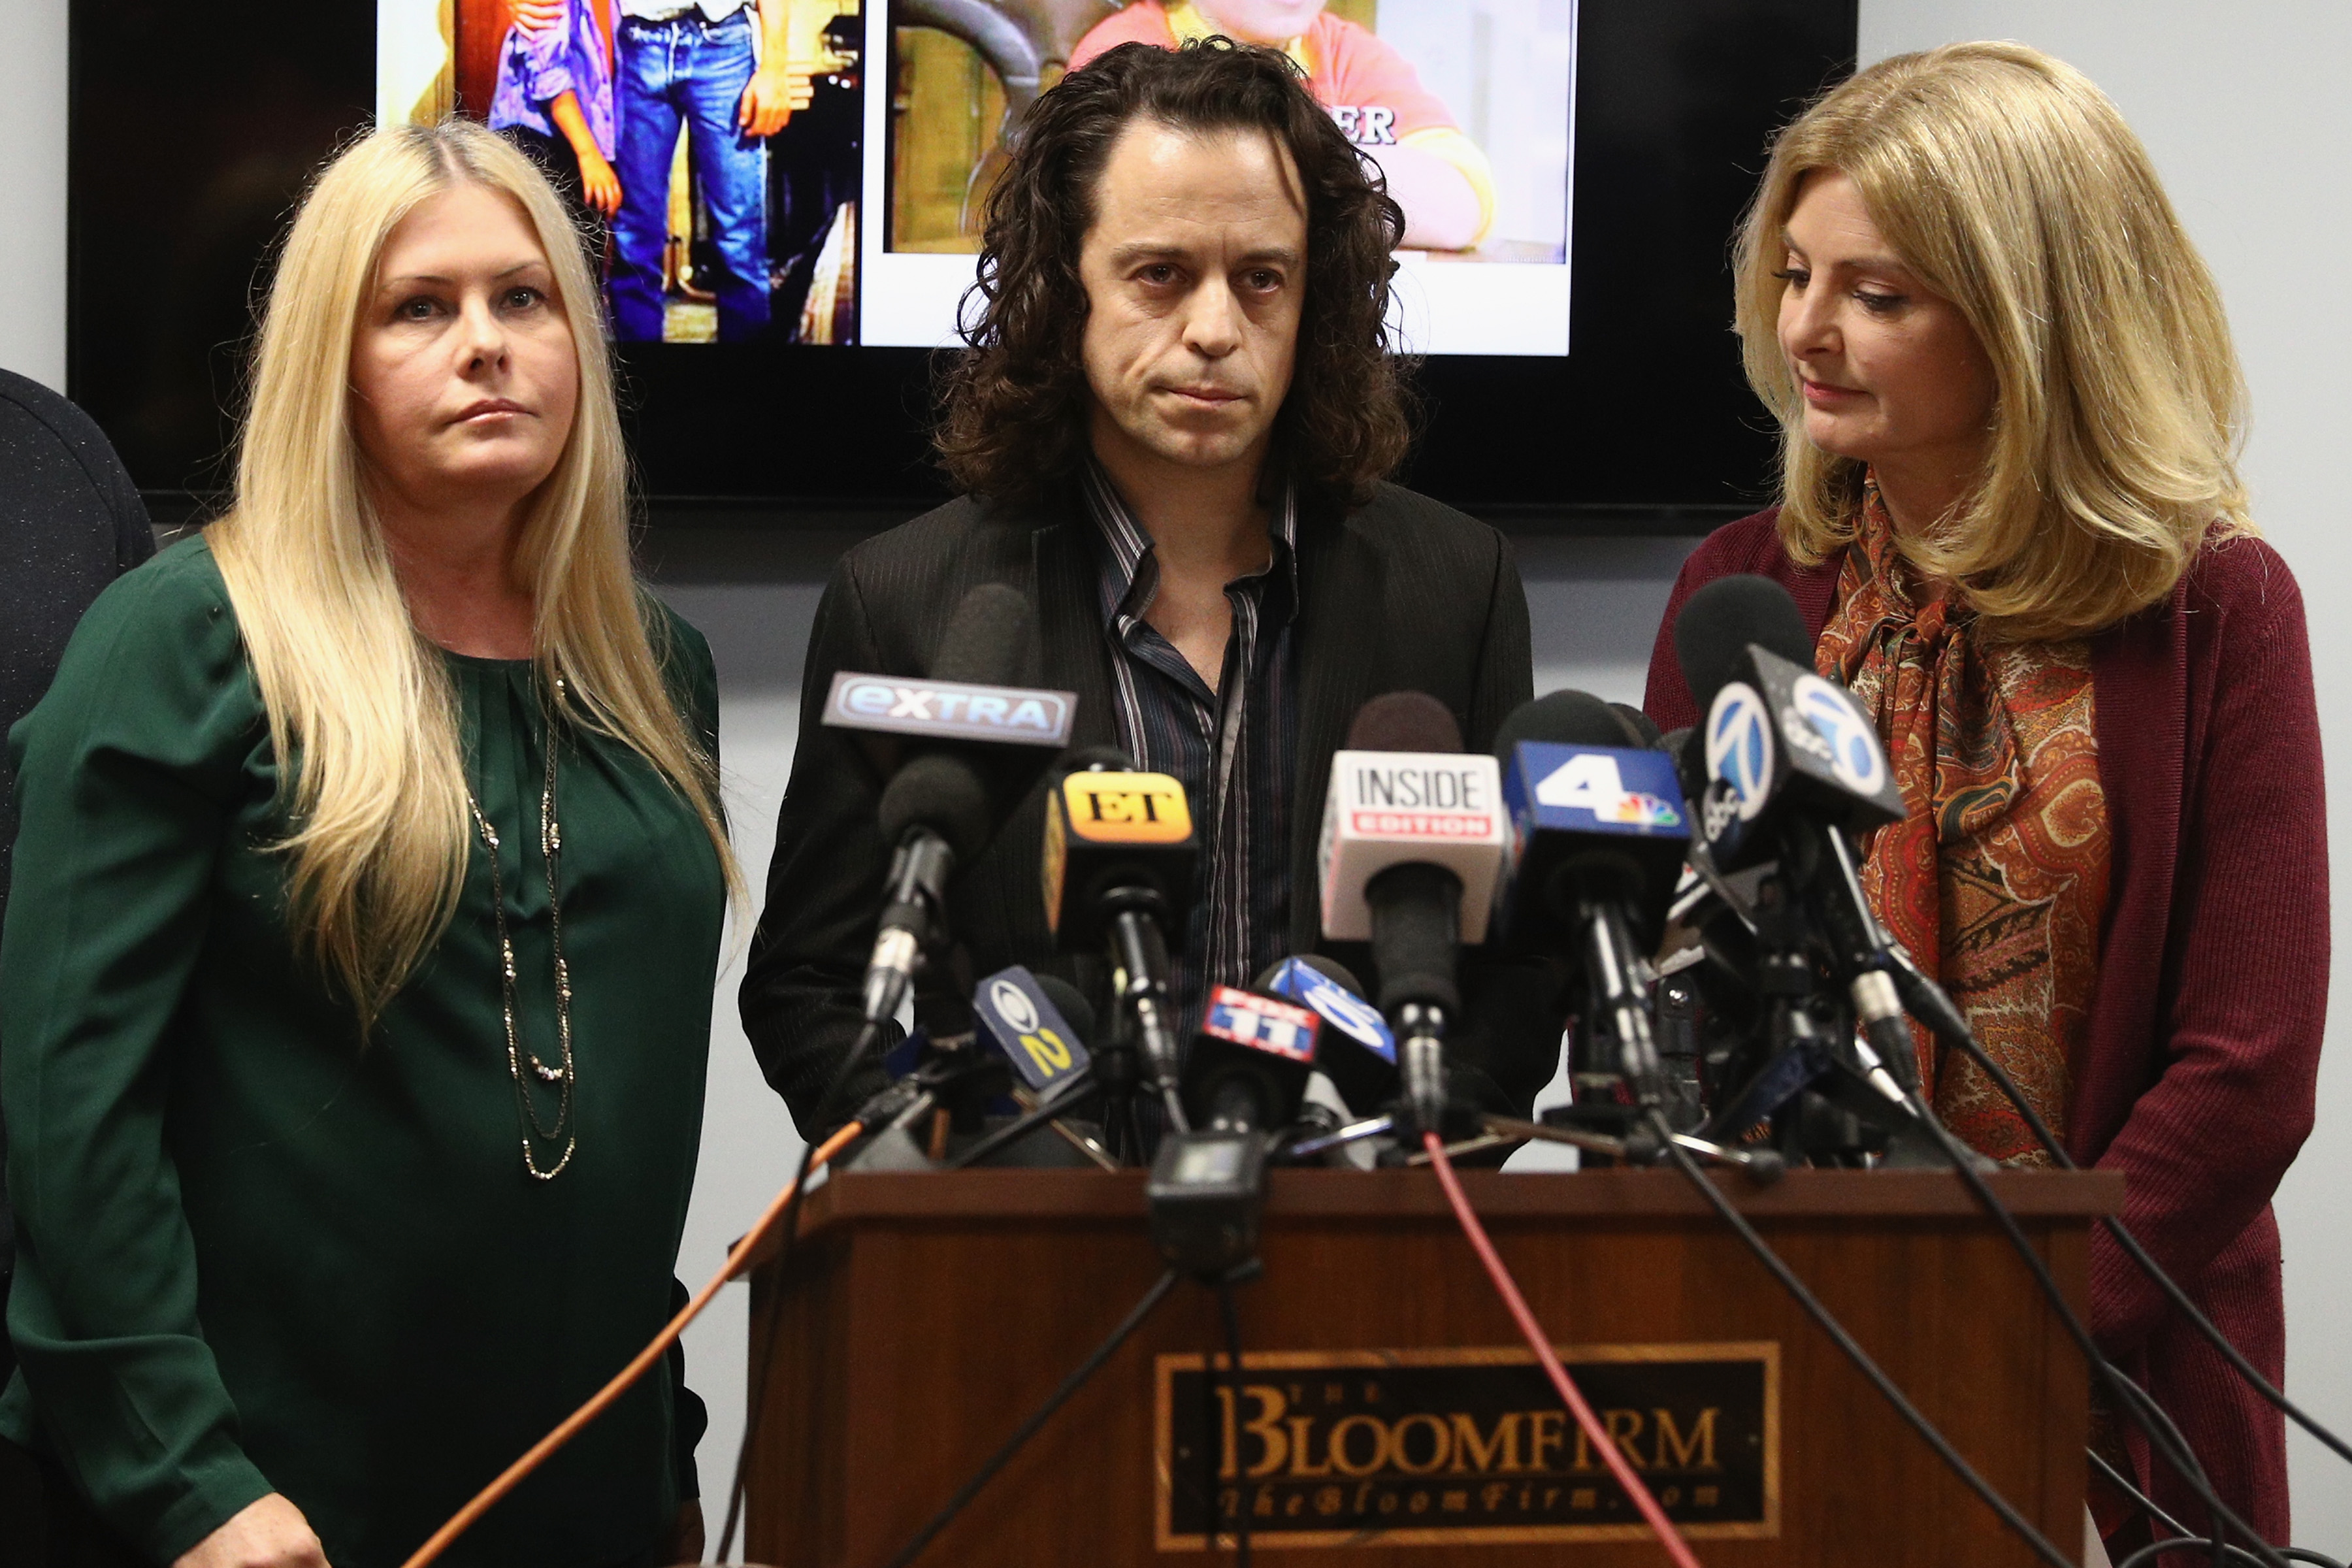 Alexander Polinsky Holds Press Conference With Attorney Lisa Bloom Regarding Sexual Harassment Allegations Against Scott Baio